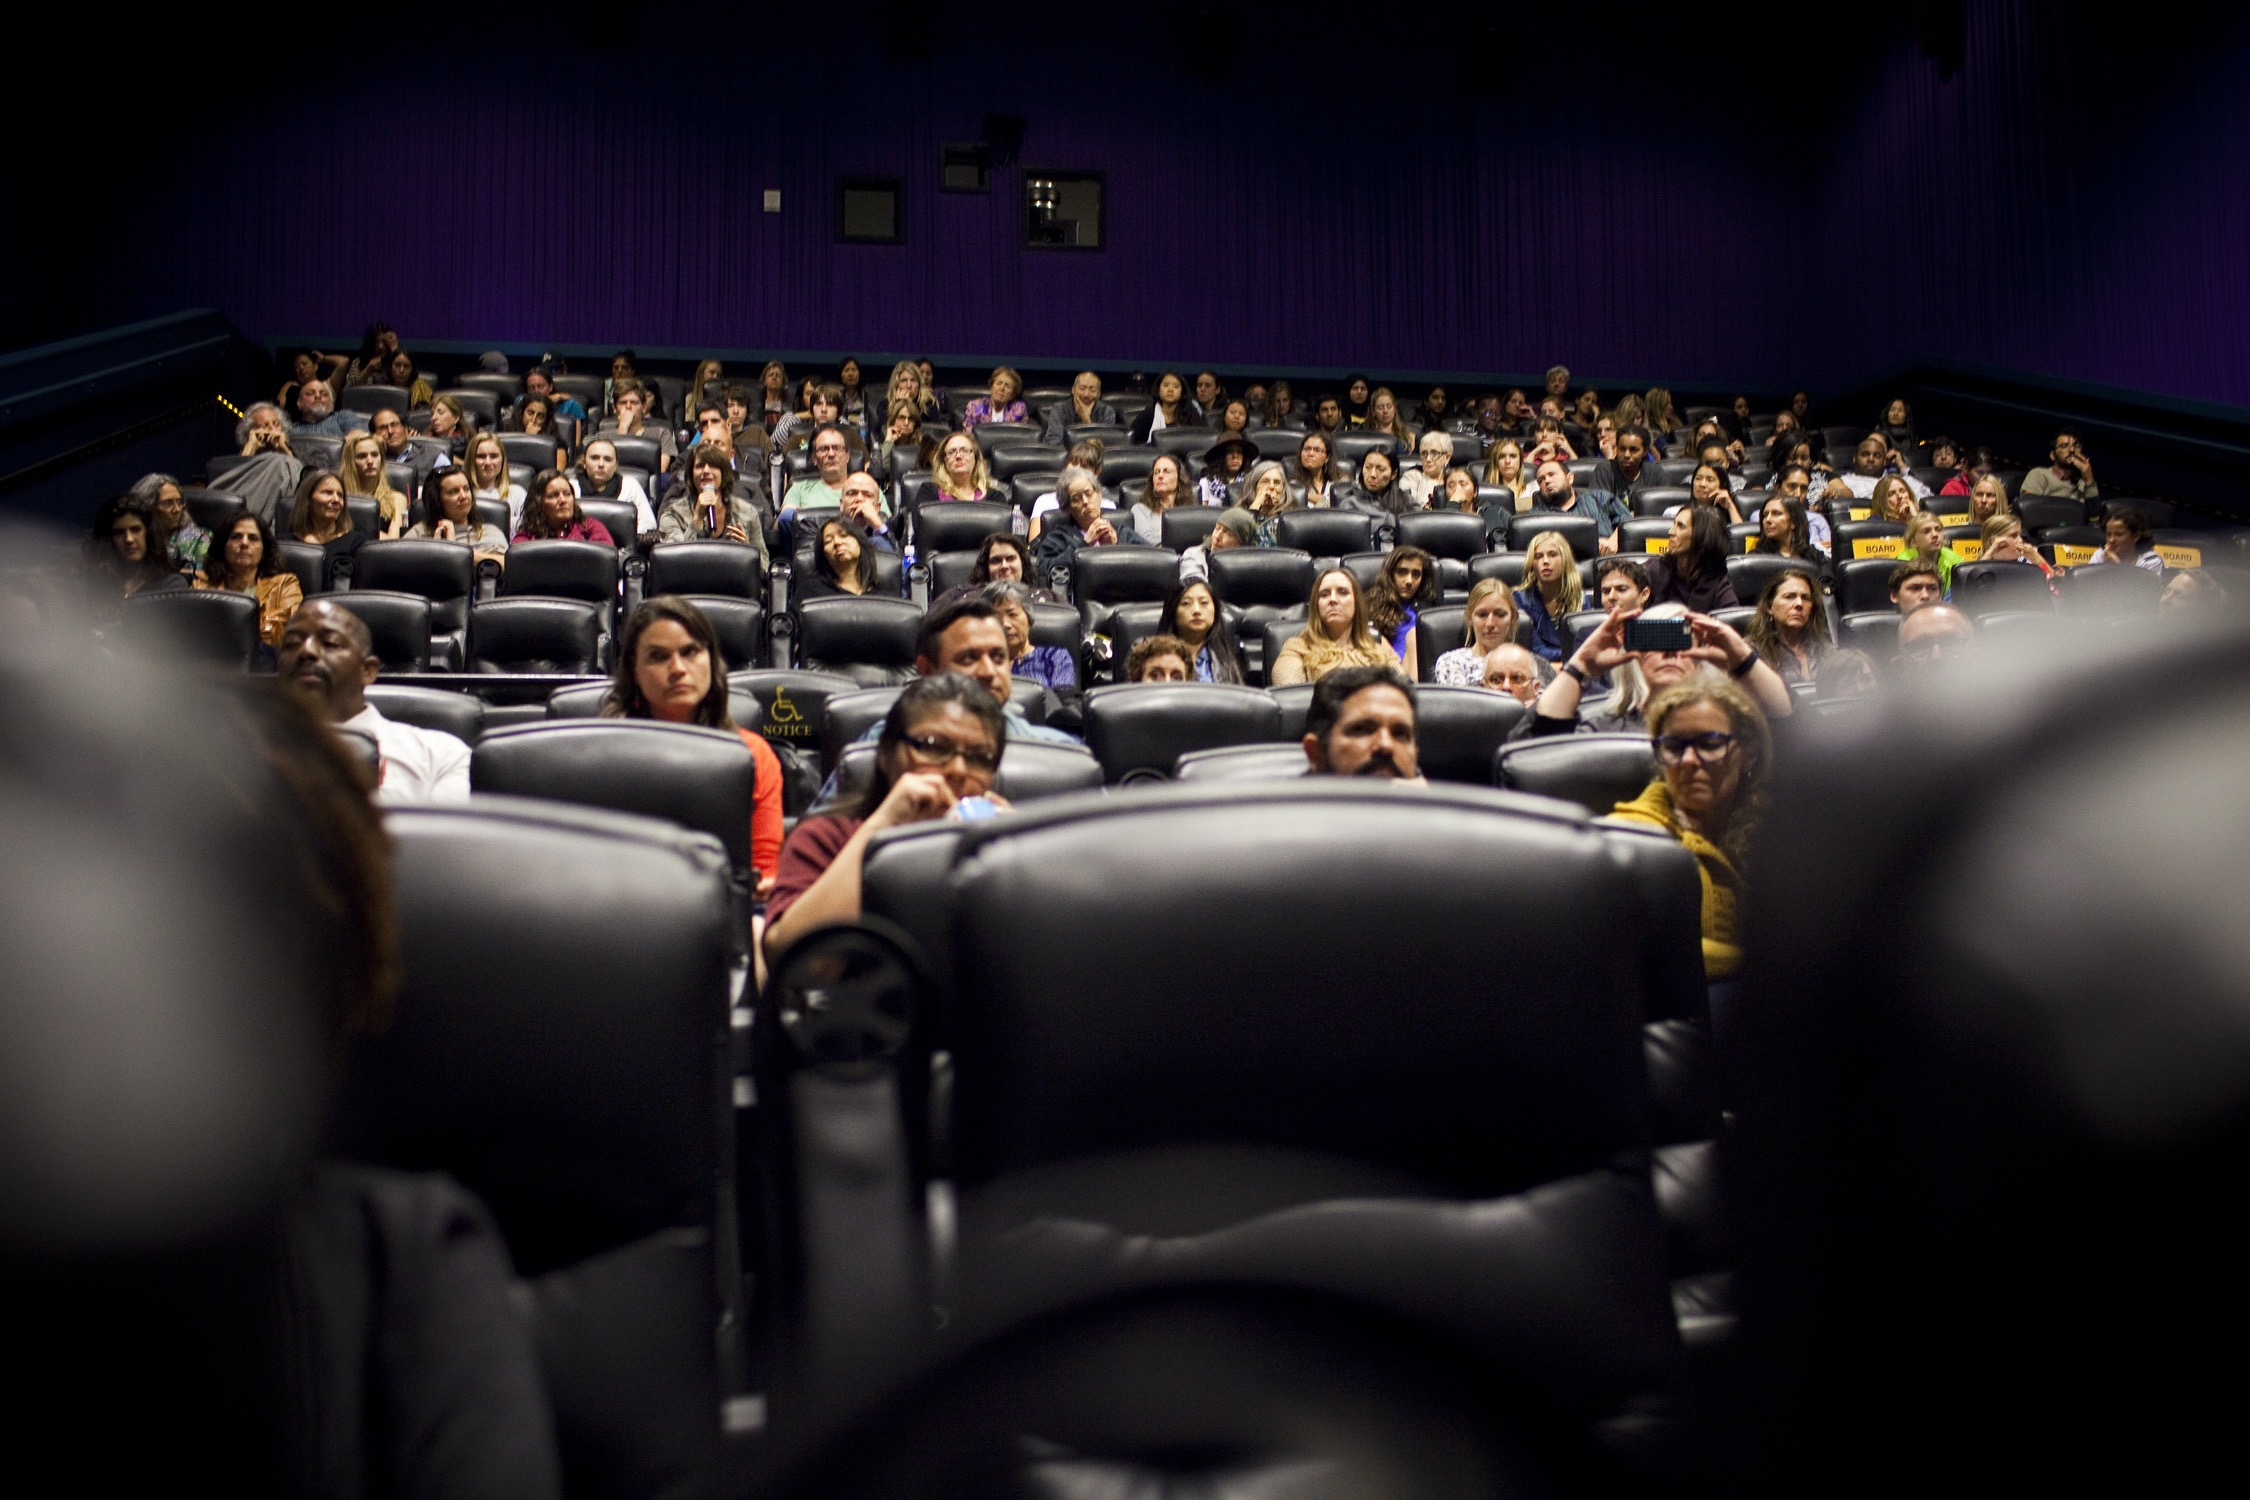 Audience at Our Screening Event